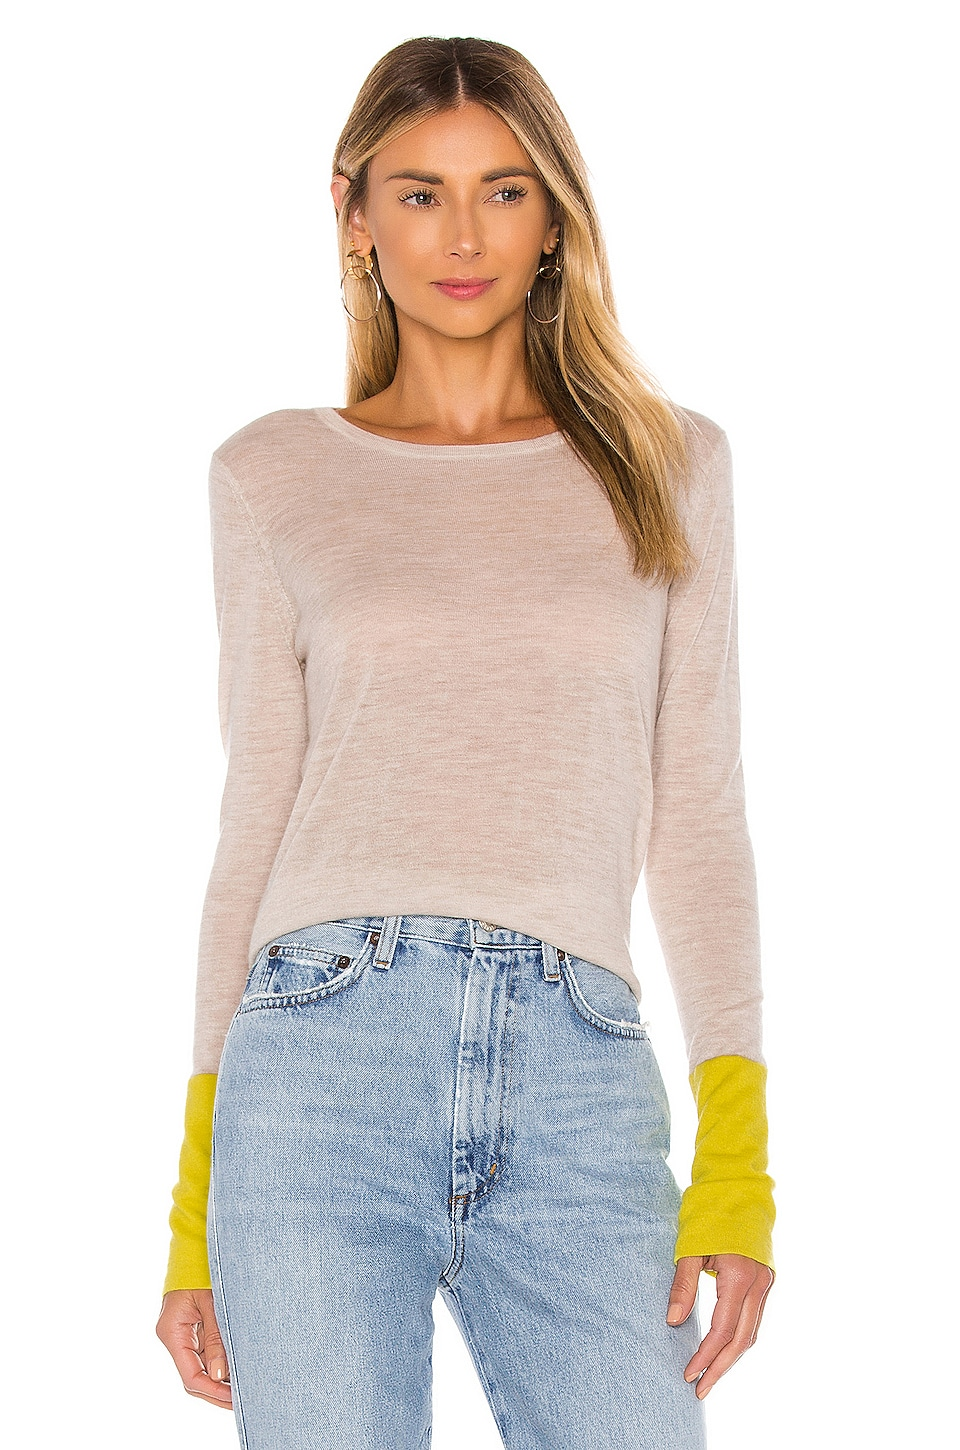 Autumn Cashmere Contrast Sleeve Crew Sweater in Wicker & High Voltage